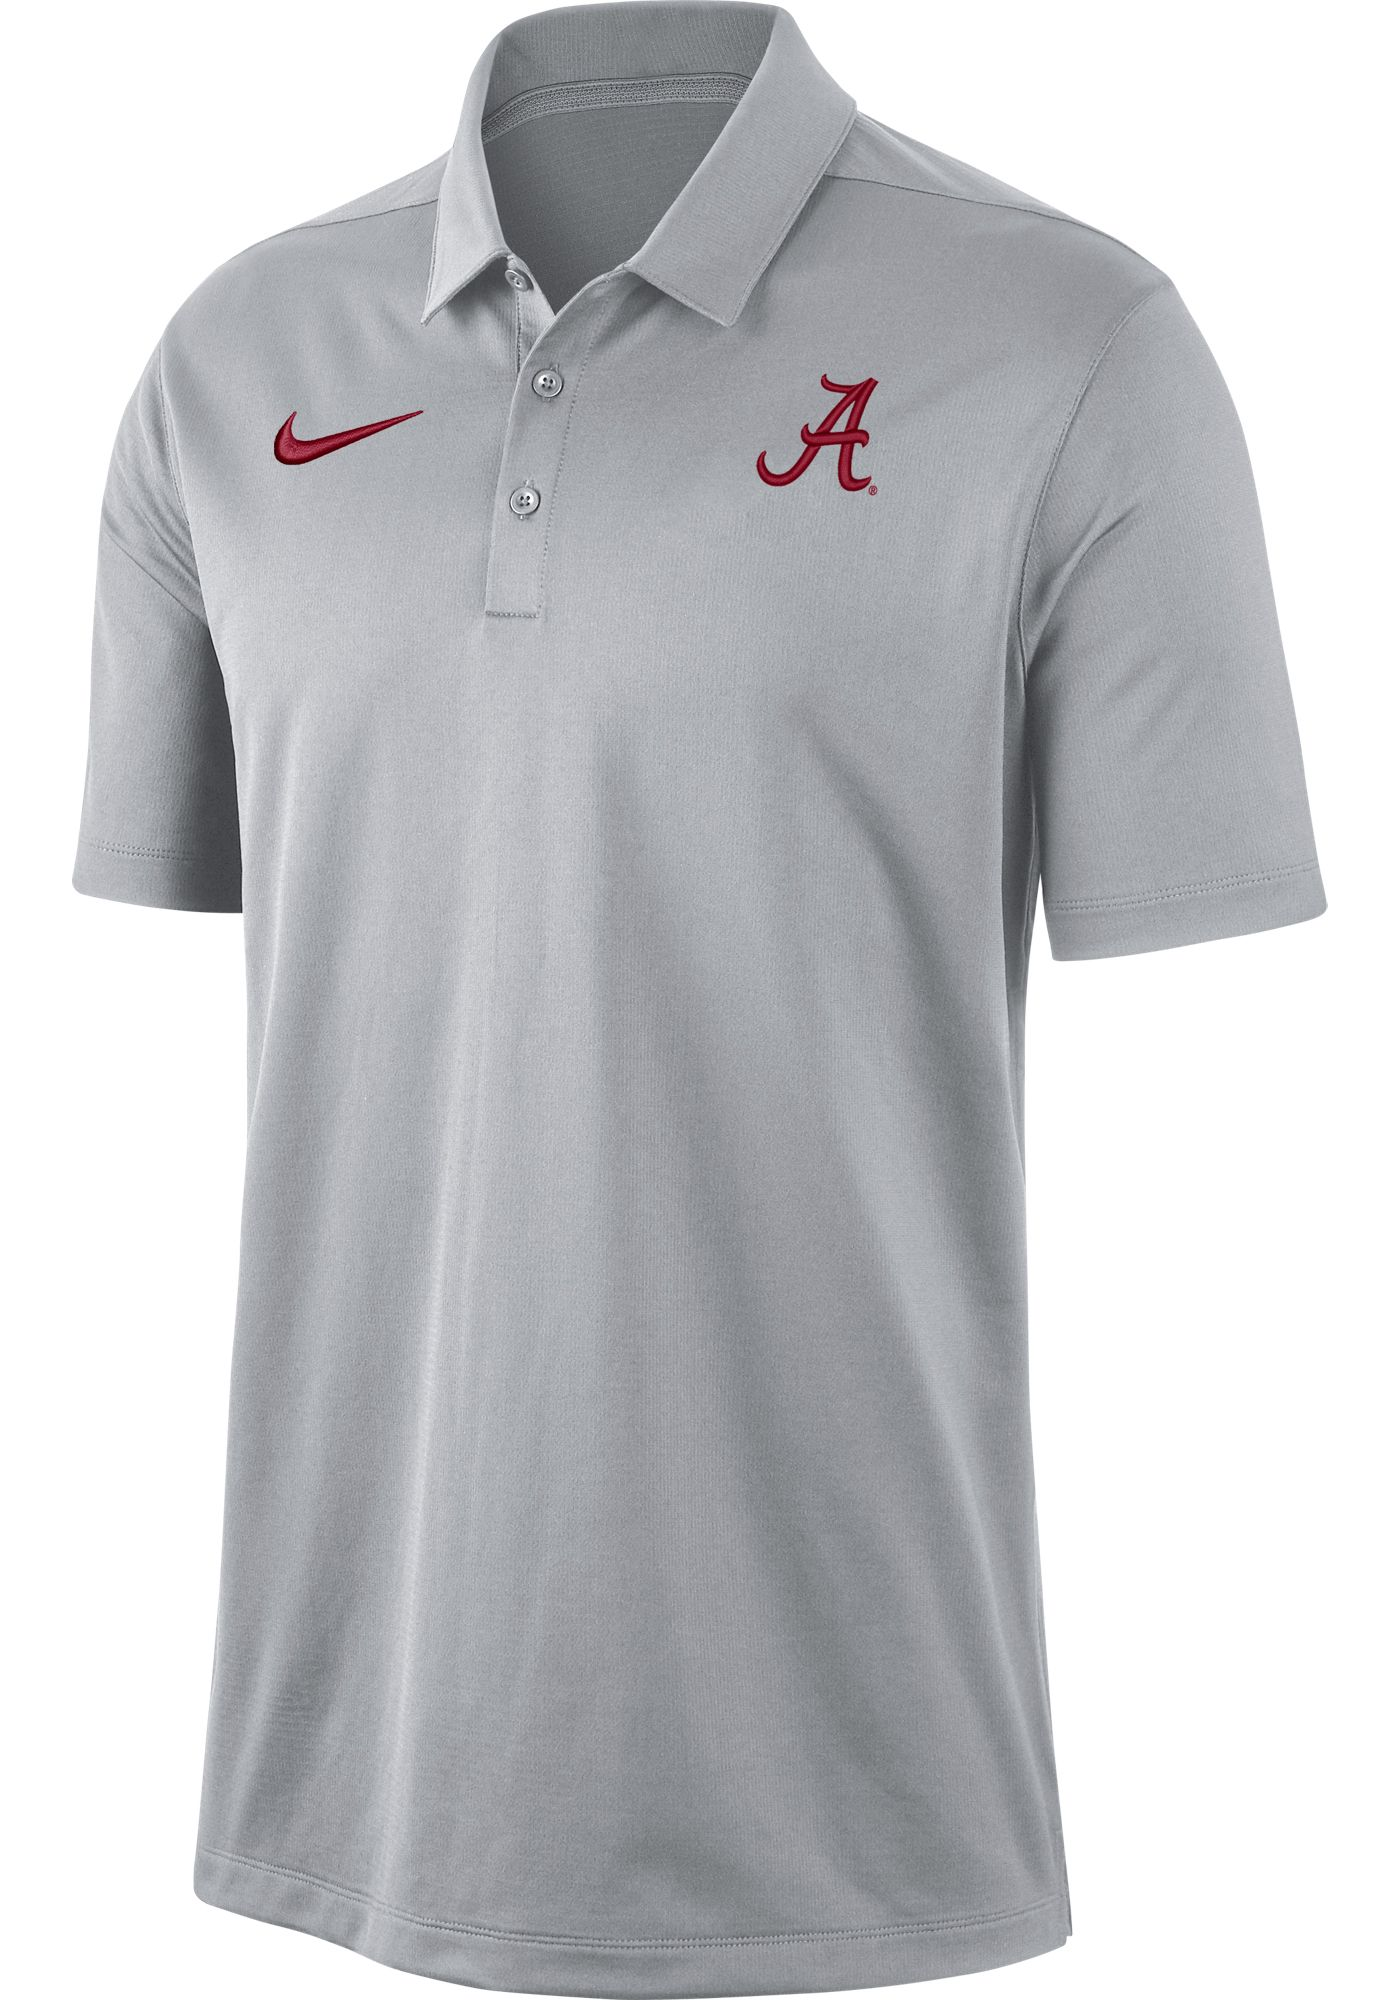 Nike Men's Alabama Crimson Tide Grey Dri-FIT Franchise Polo